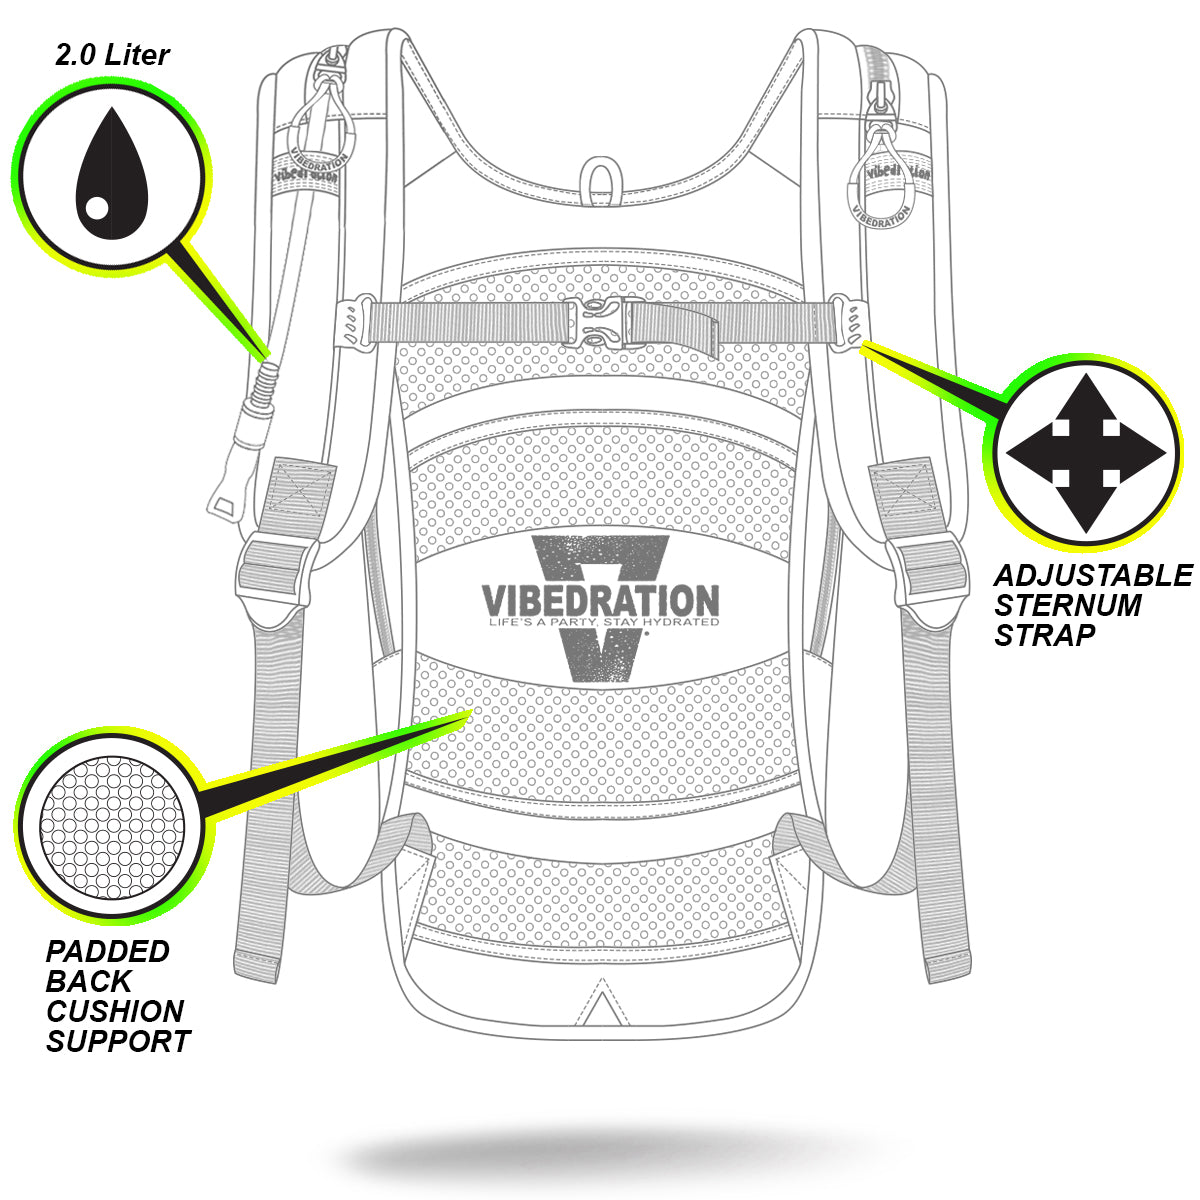 2 Liter Hydration pack with padded backing